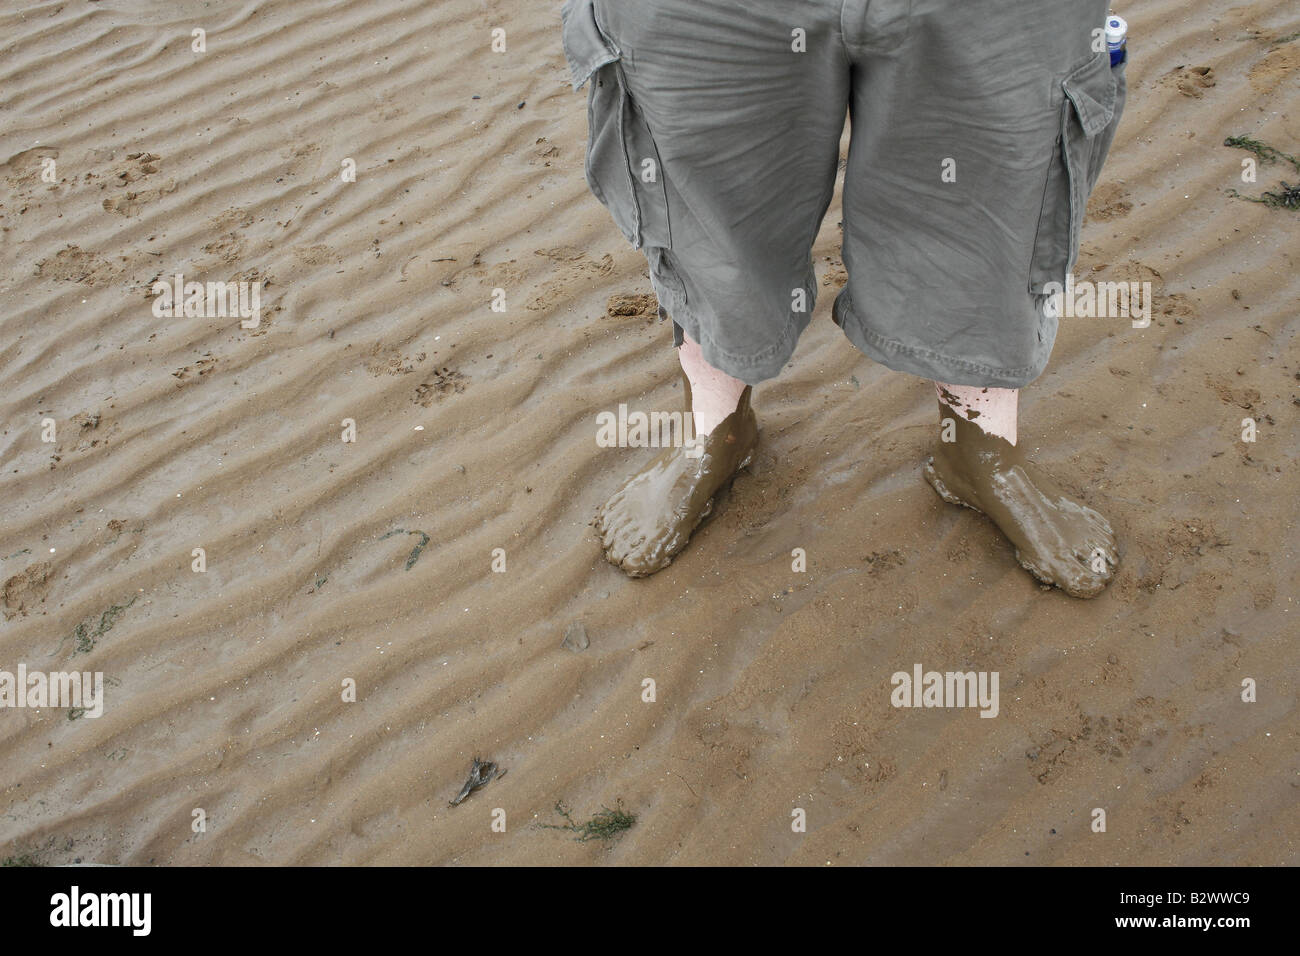 man s feet covered in wet sand Stock Photo